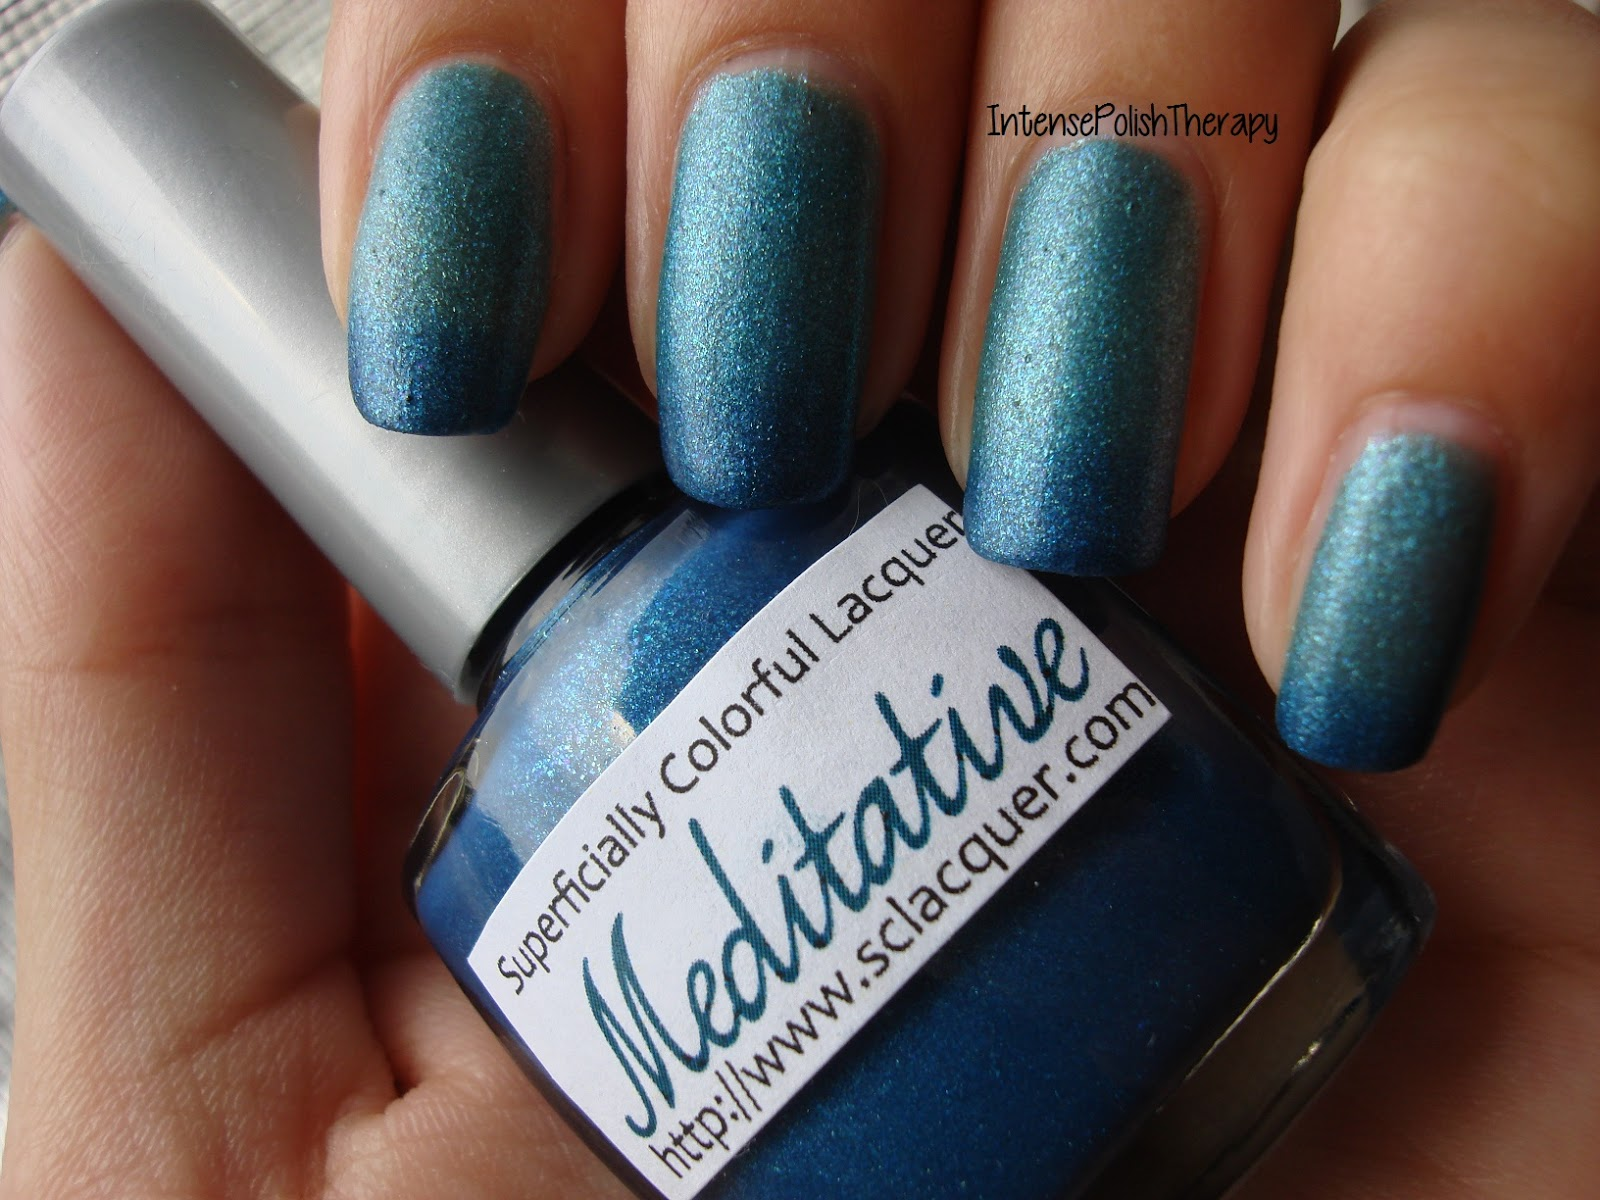 Superficially Colorful Lacquer - Meditative Matte